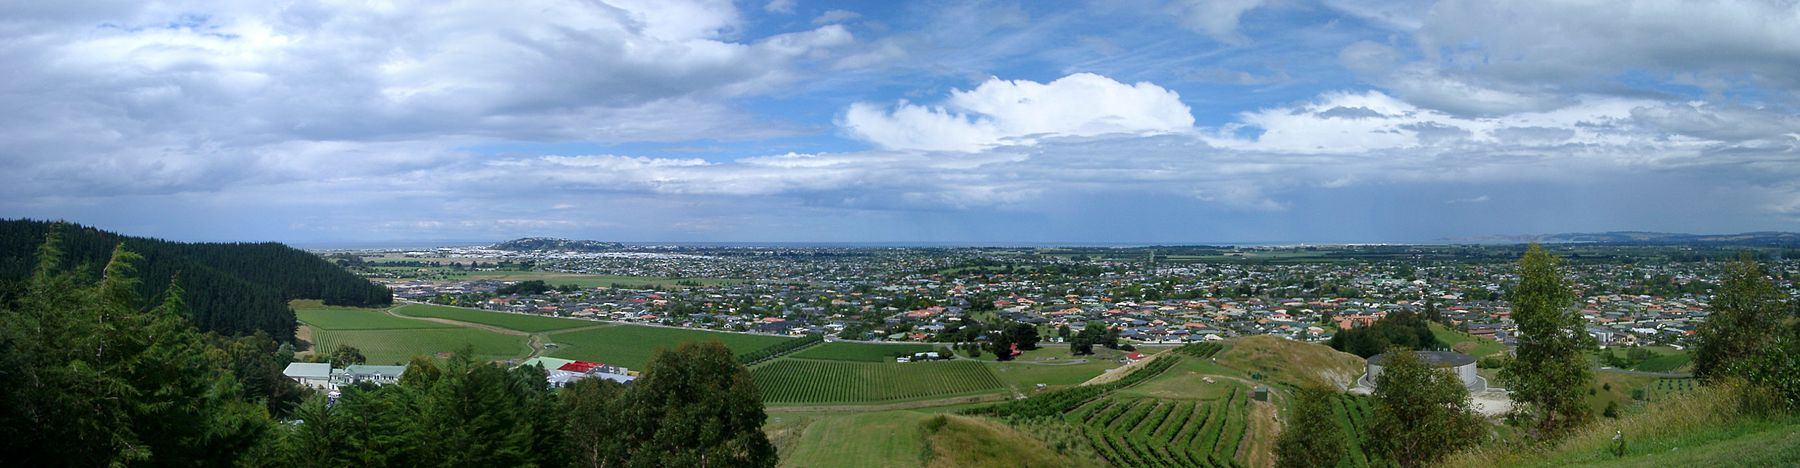 Napier, New Zealand from Sugar Loaf hill.jpg